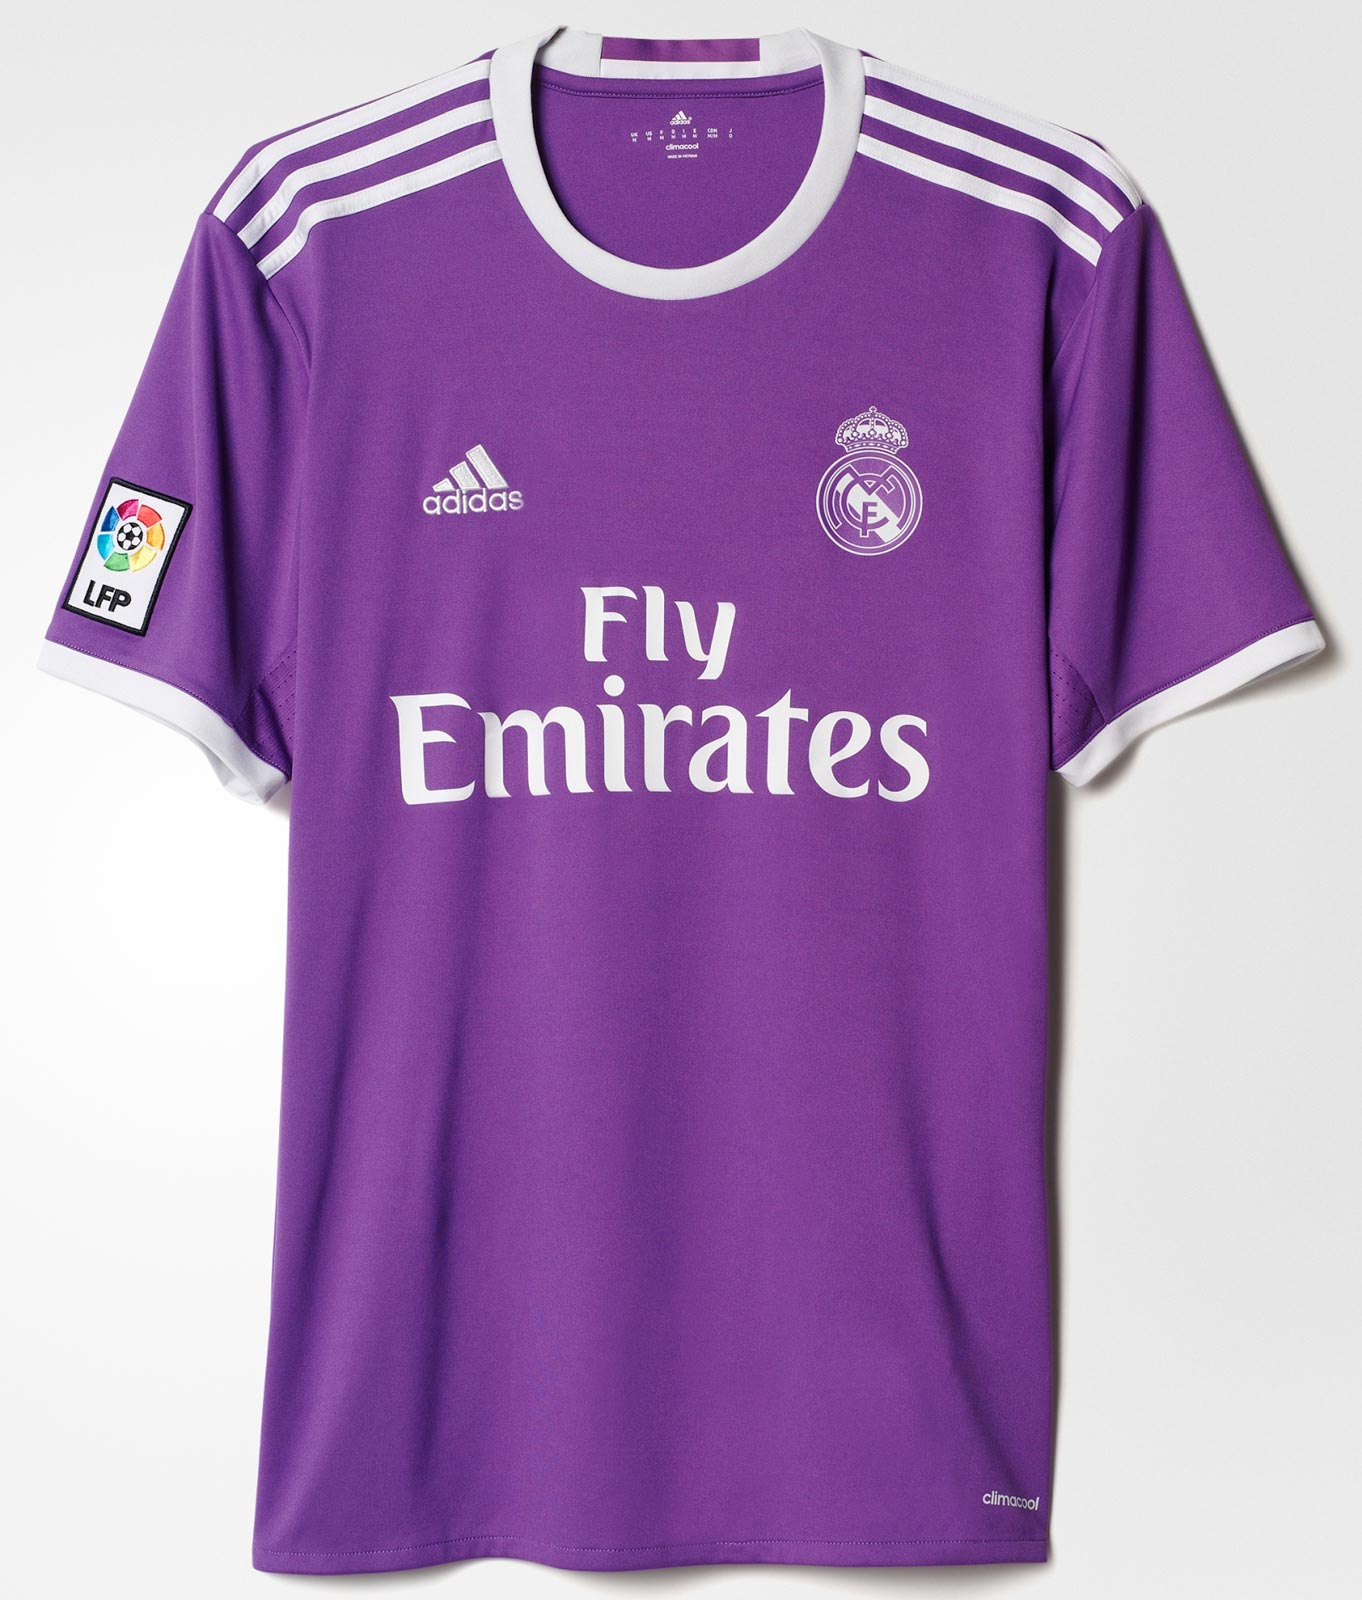 47b3d8ae3d7ce Bayern s Beautiful Away Jersey The Best Of The Bunch As Adidas ...